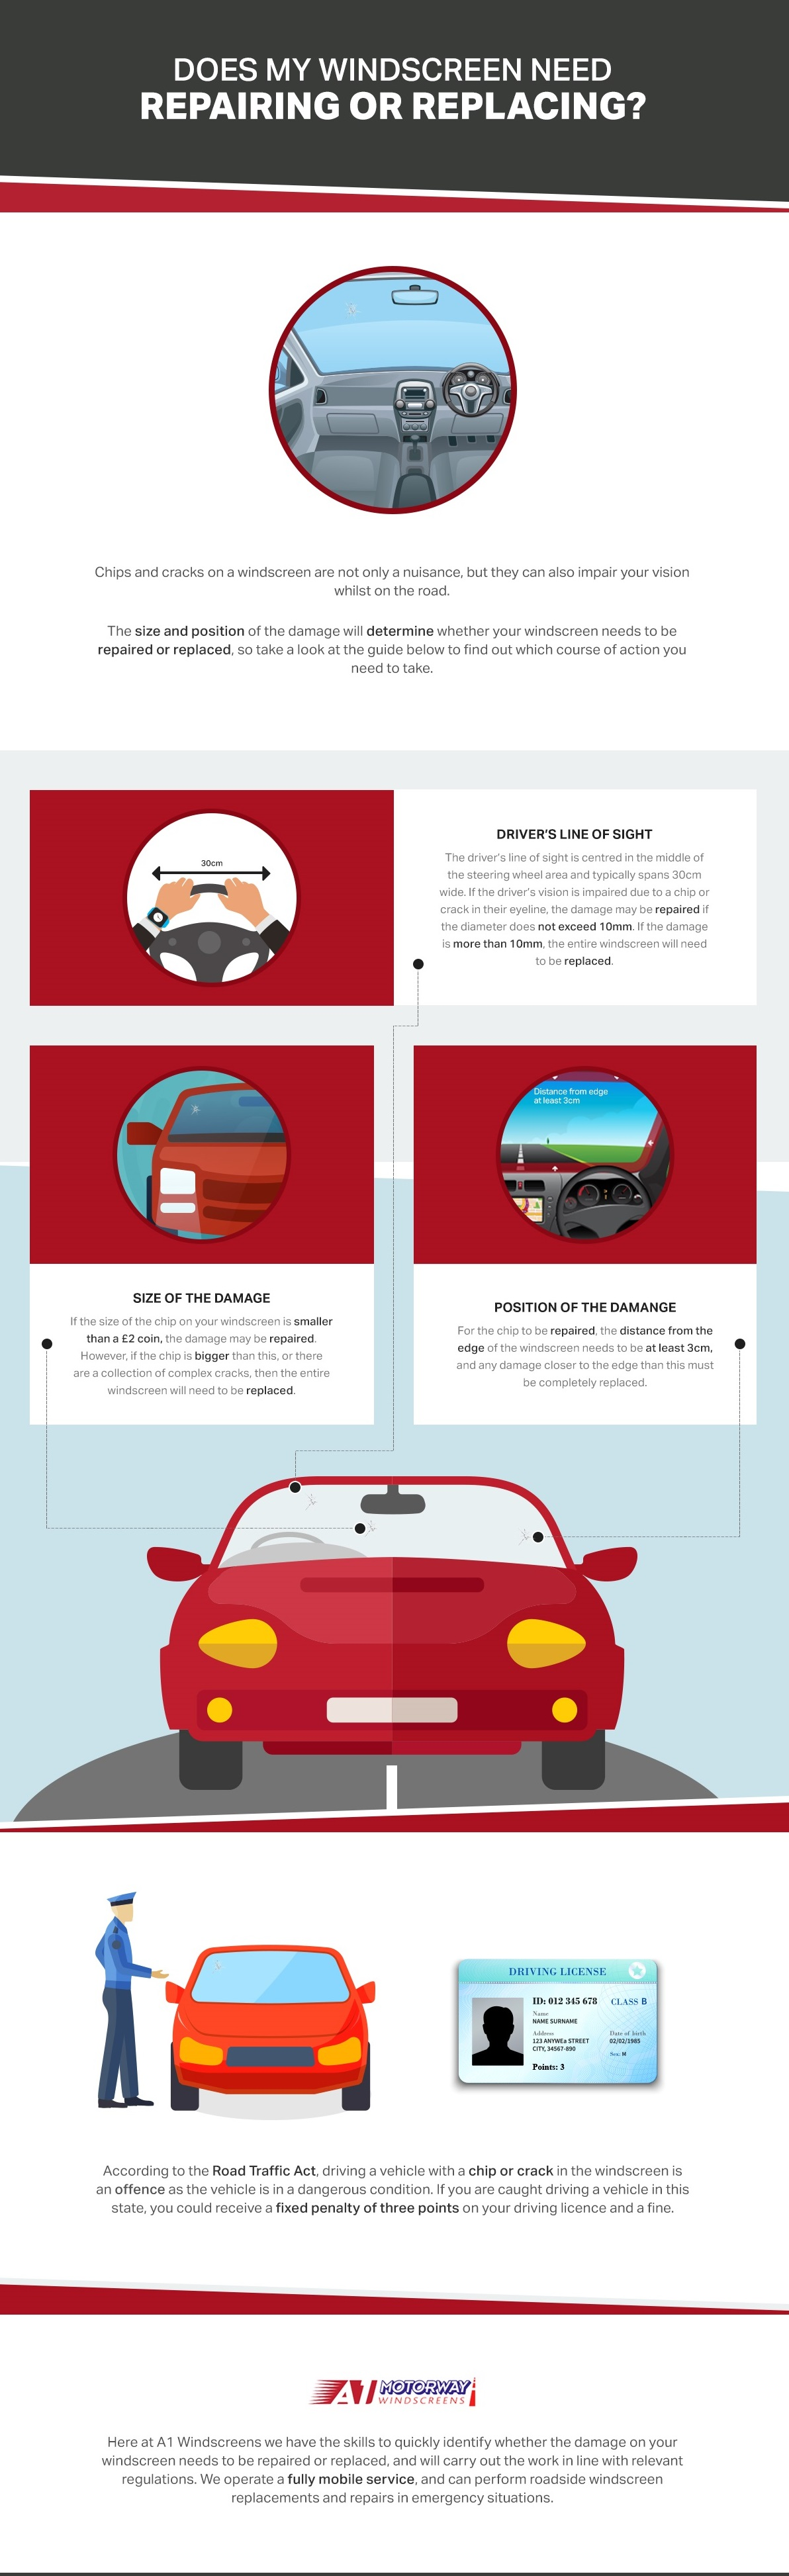 Does my Windscreen need Repairing or Replacing? infographic